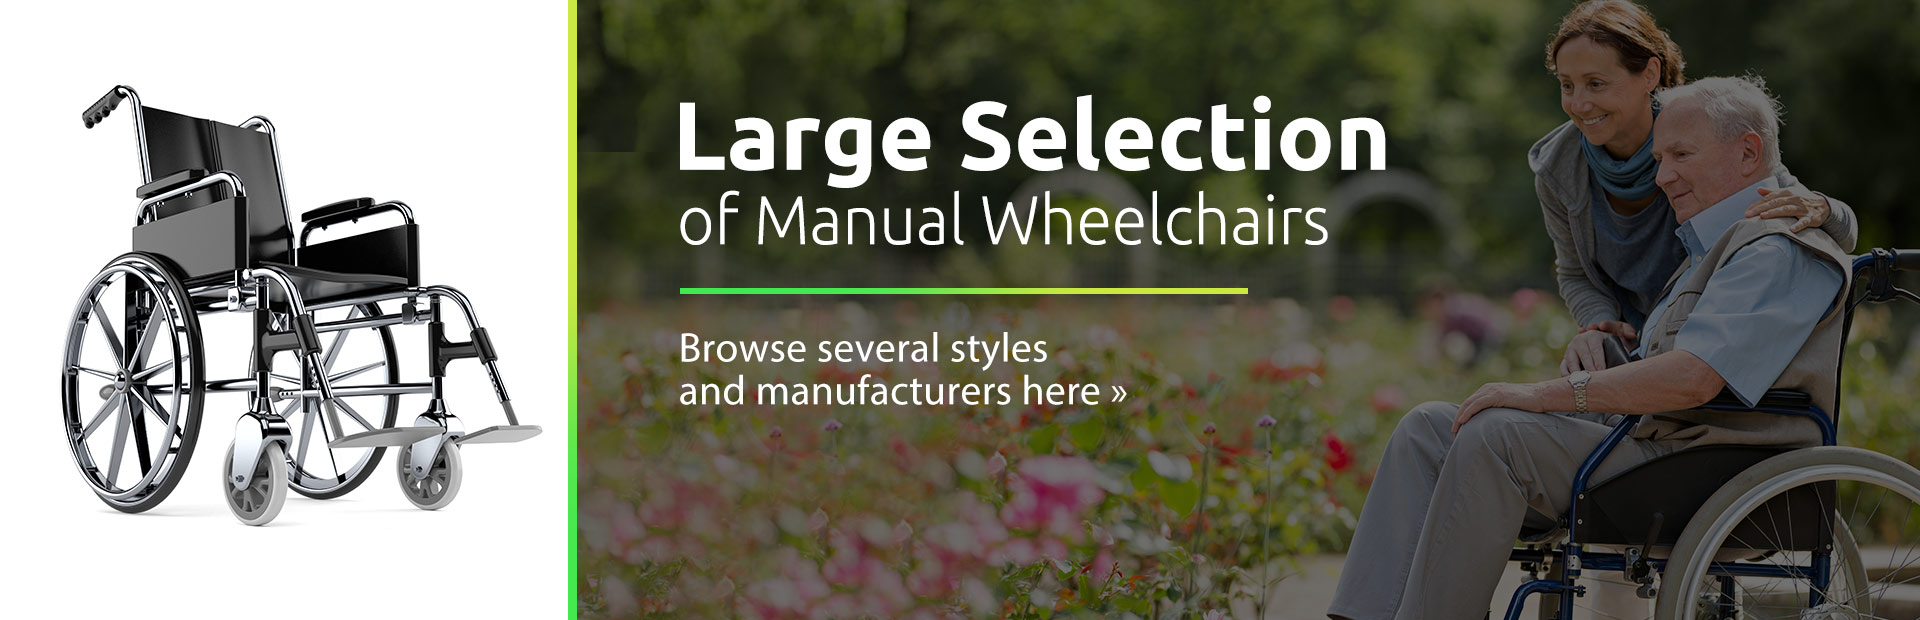 Click here to browse our large selection of manual wheelchairs.